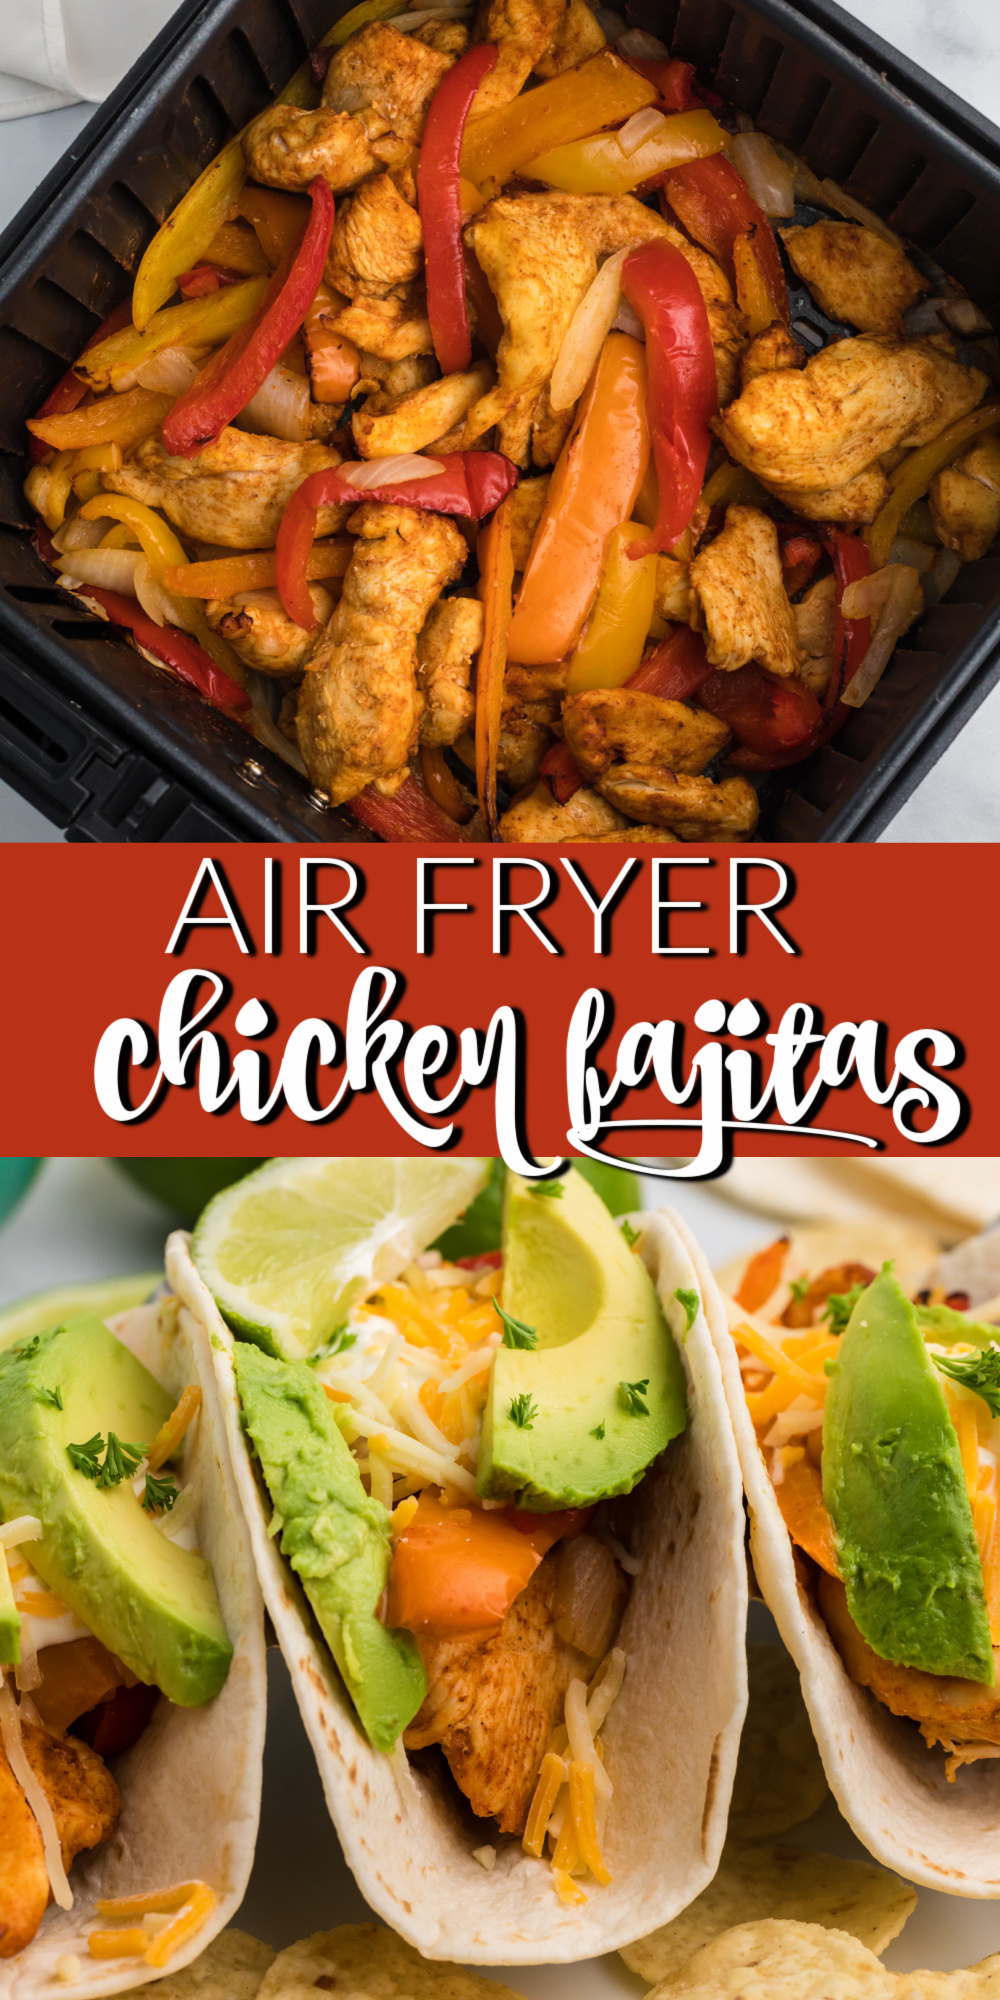 Air Fryer Chicken Fajitas are one of my new favorite ways to make fajitas. Made with chicken breasts, bell peppers, onions, and more. You won't believe just how quick and easy this meal is to make!